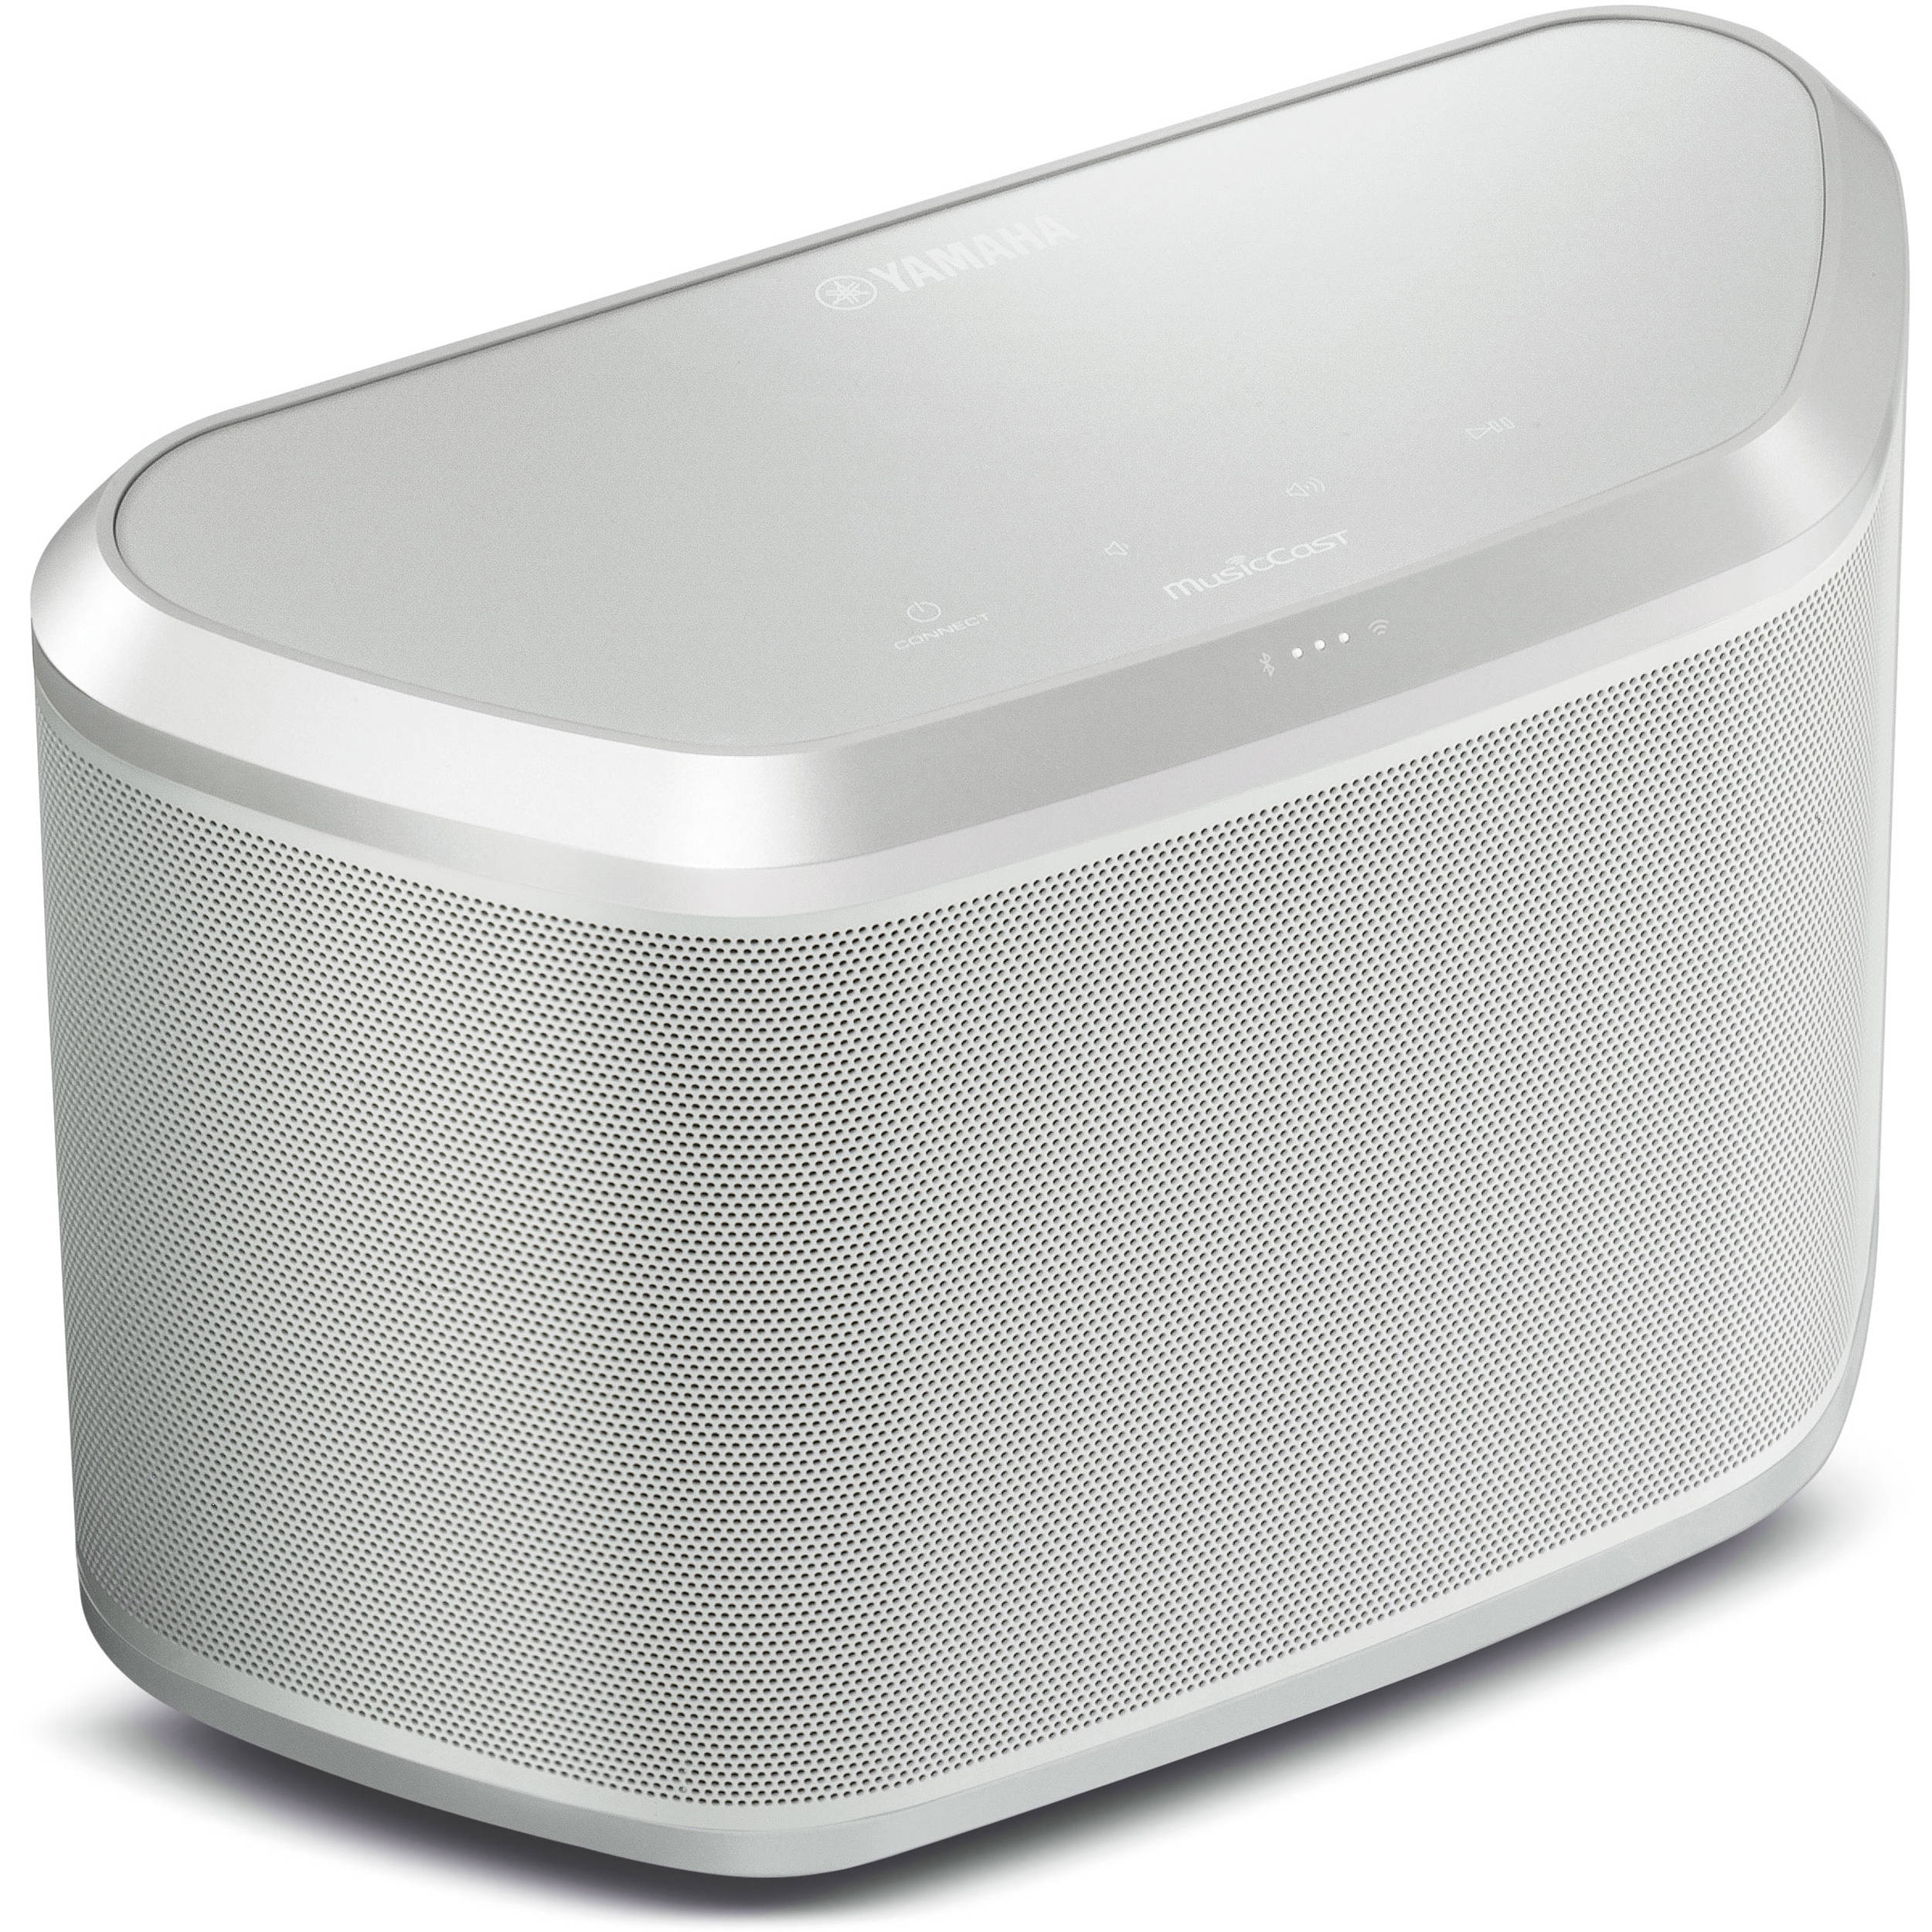 yamaha wx 030 musiccast wireless speaker white silver wx. Black Bedroom Furniture Sets. Home Design Ideas